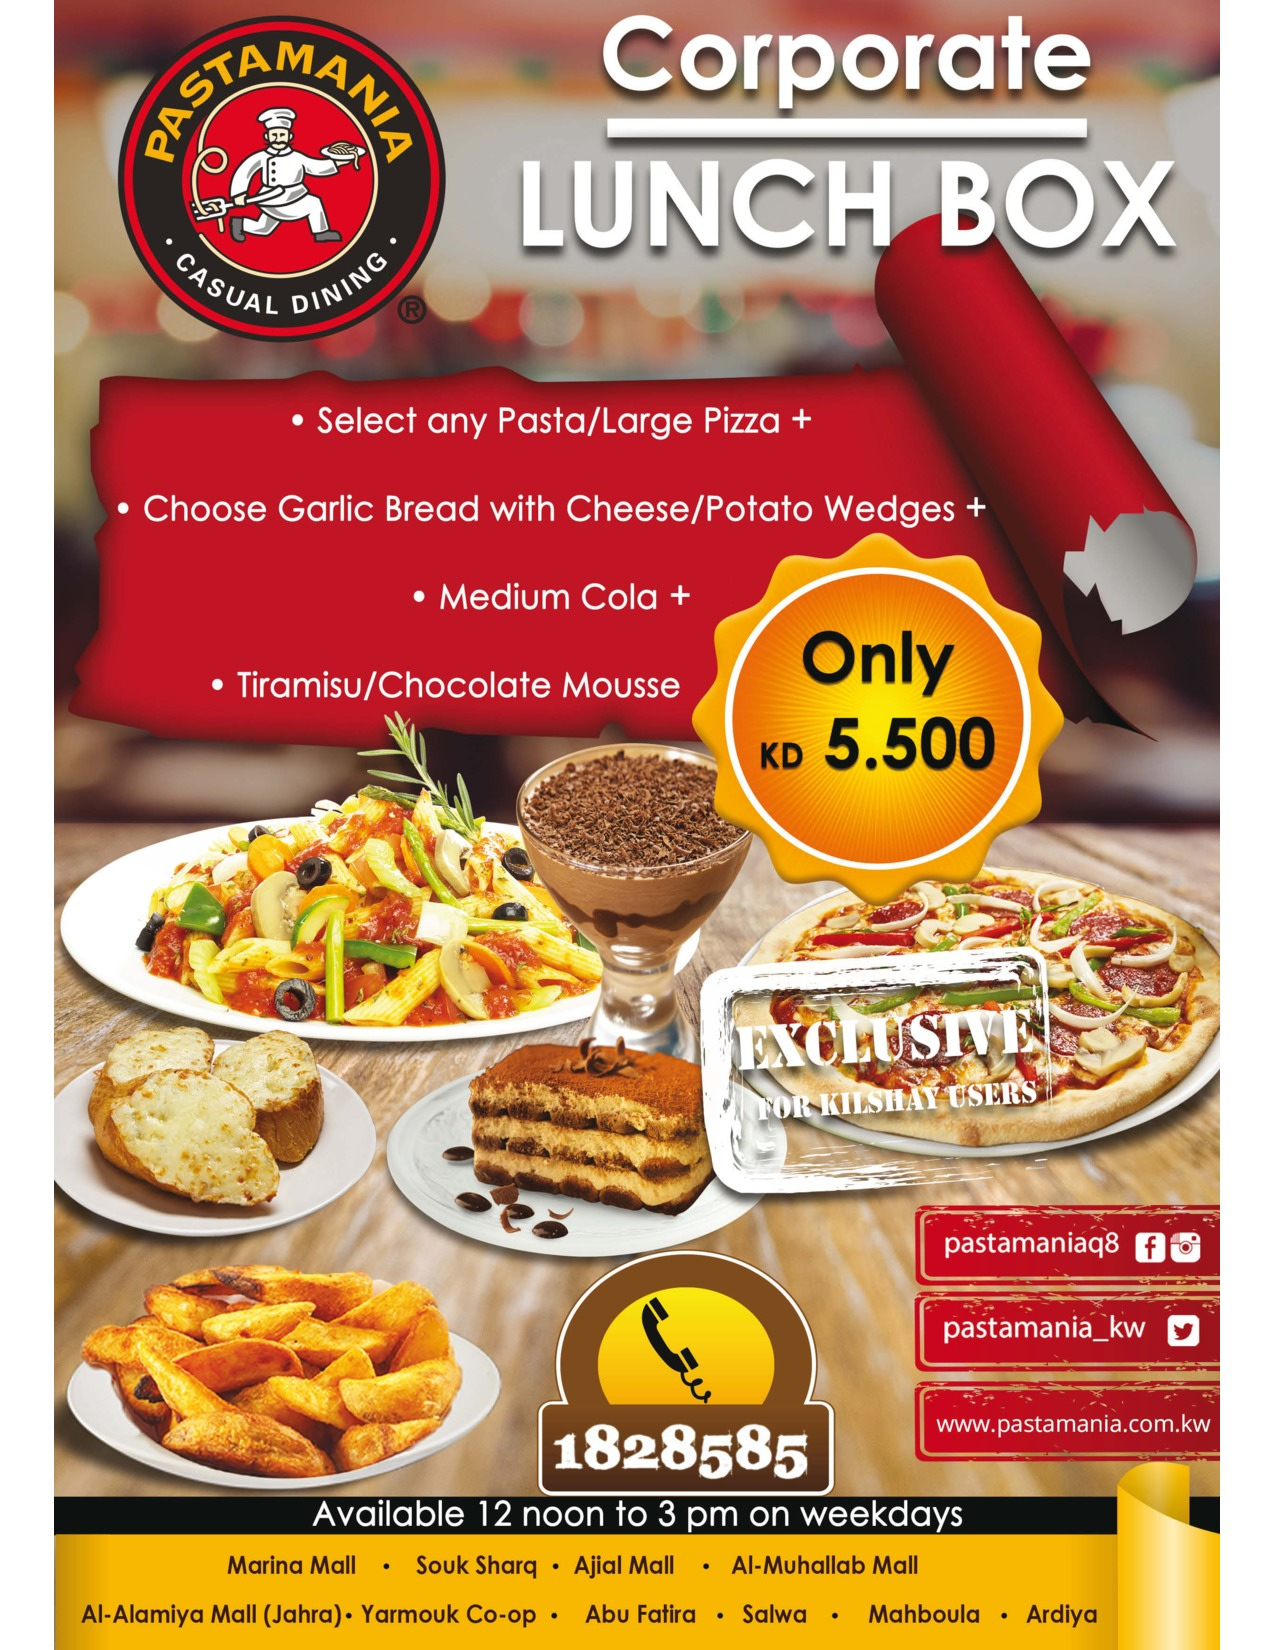 corporate-lunch-box-kuwait